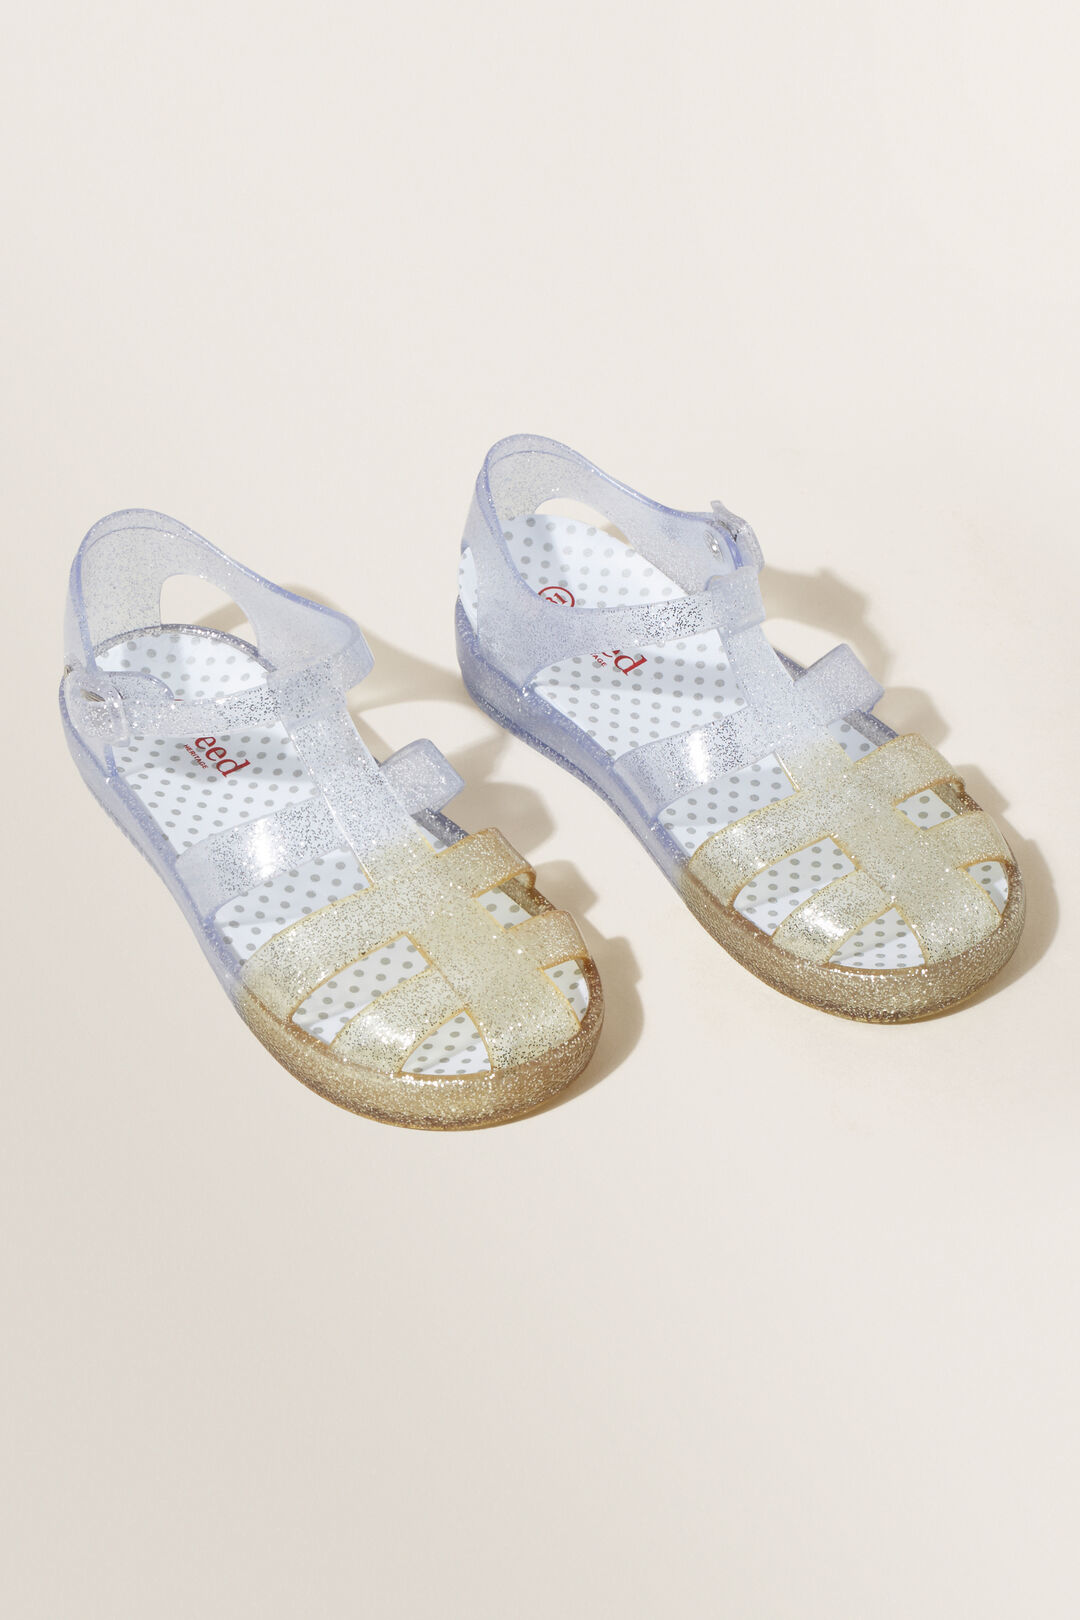 Ombre Jelly Sandal  GOLD/SILVER  hi-res